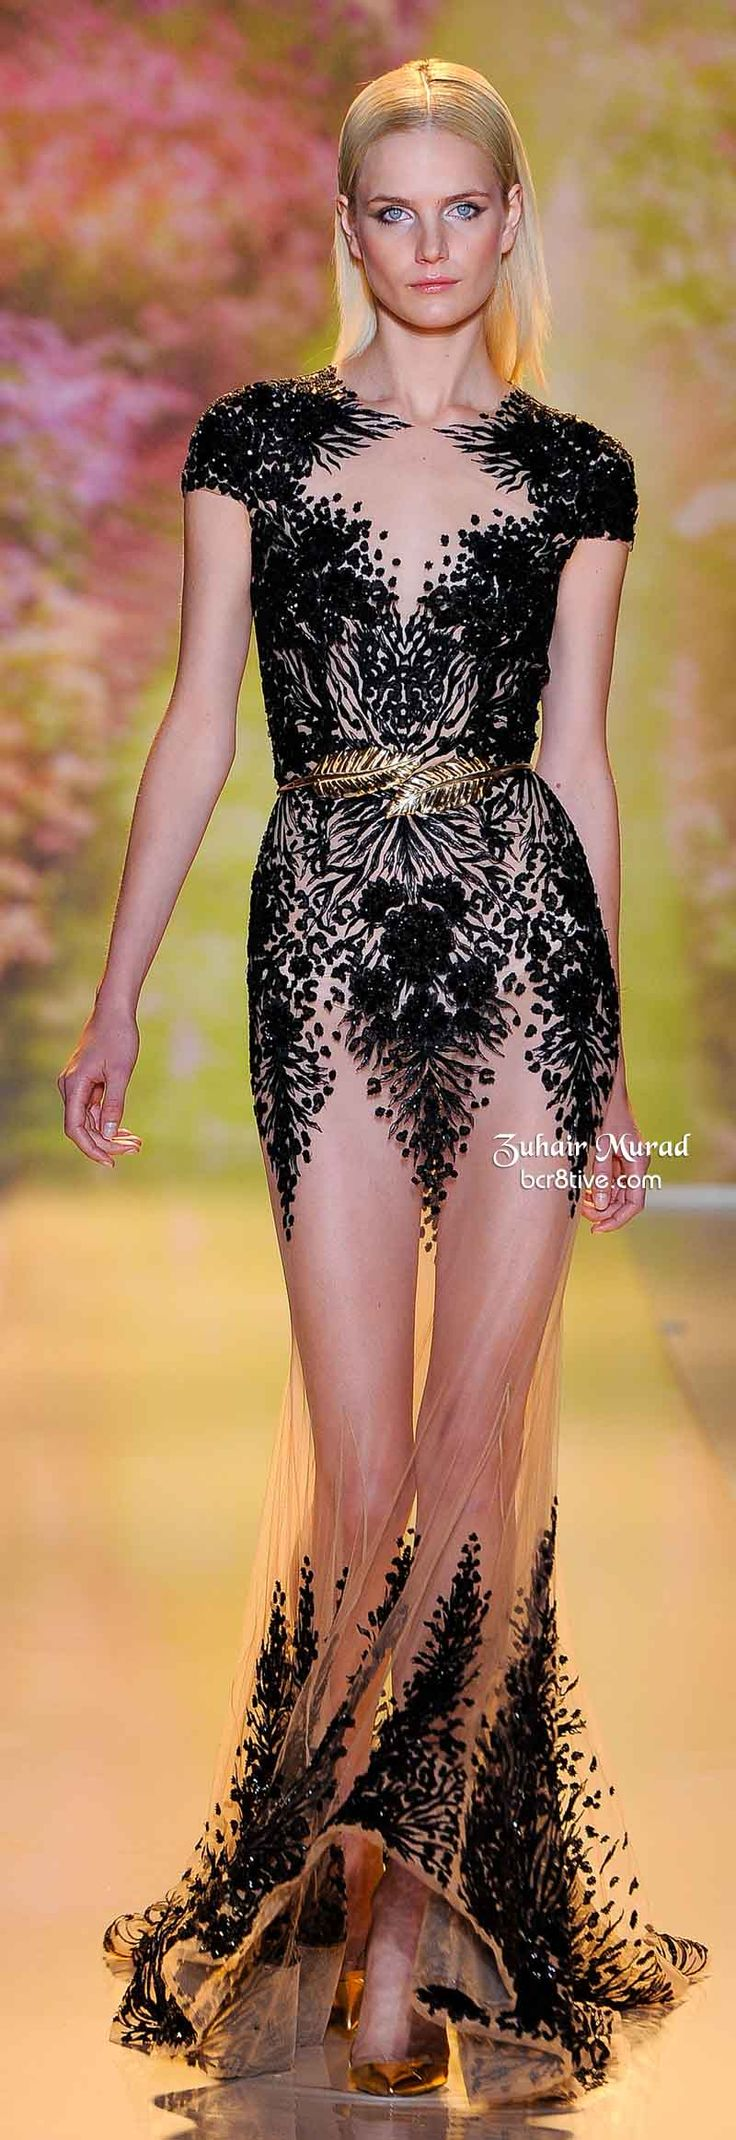 Sheer Dress With Black Lace and Gold Belt. Zuhair Murad Spring 2014 Haute Couture